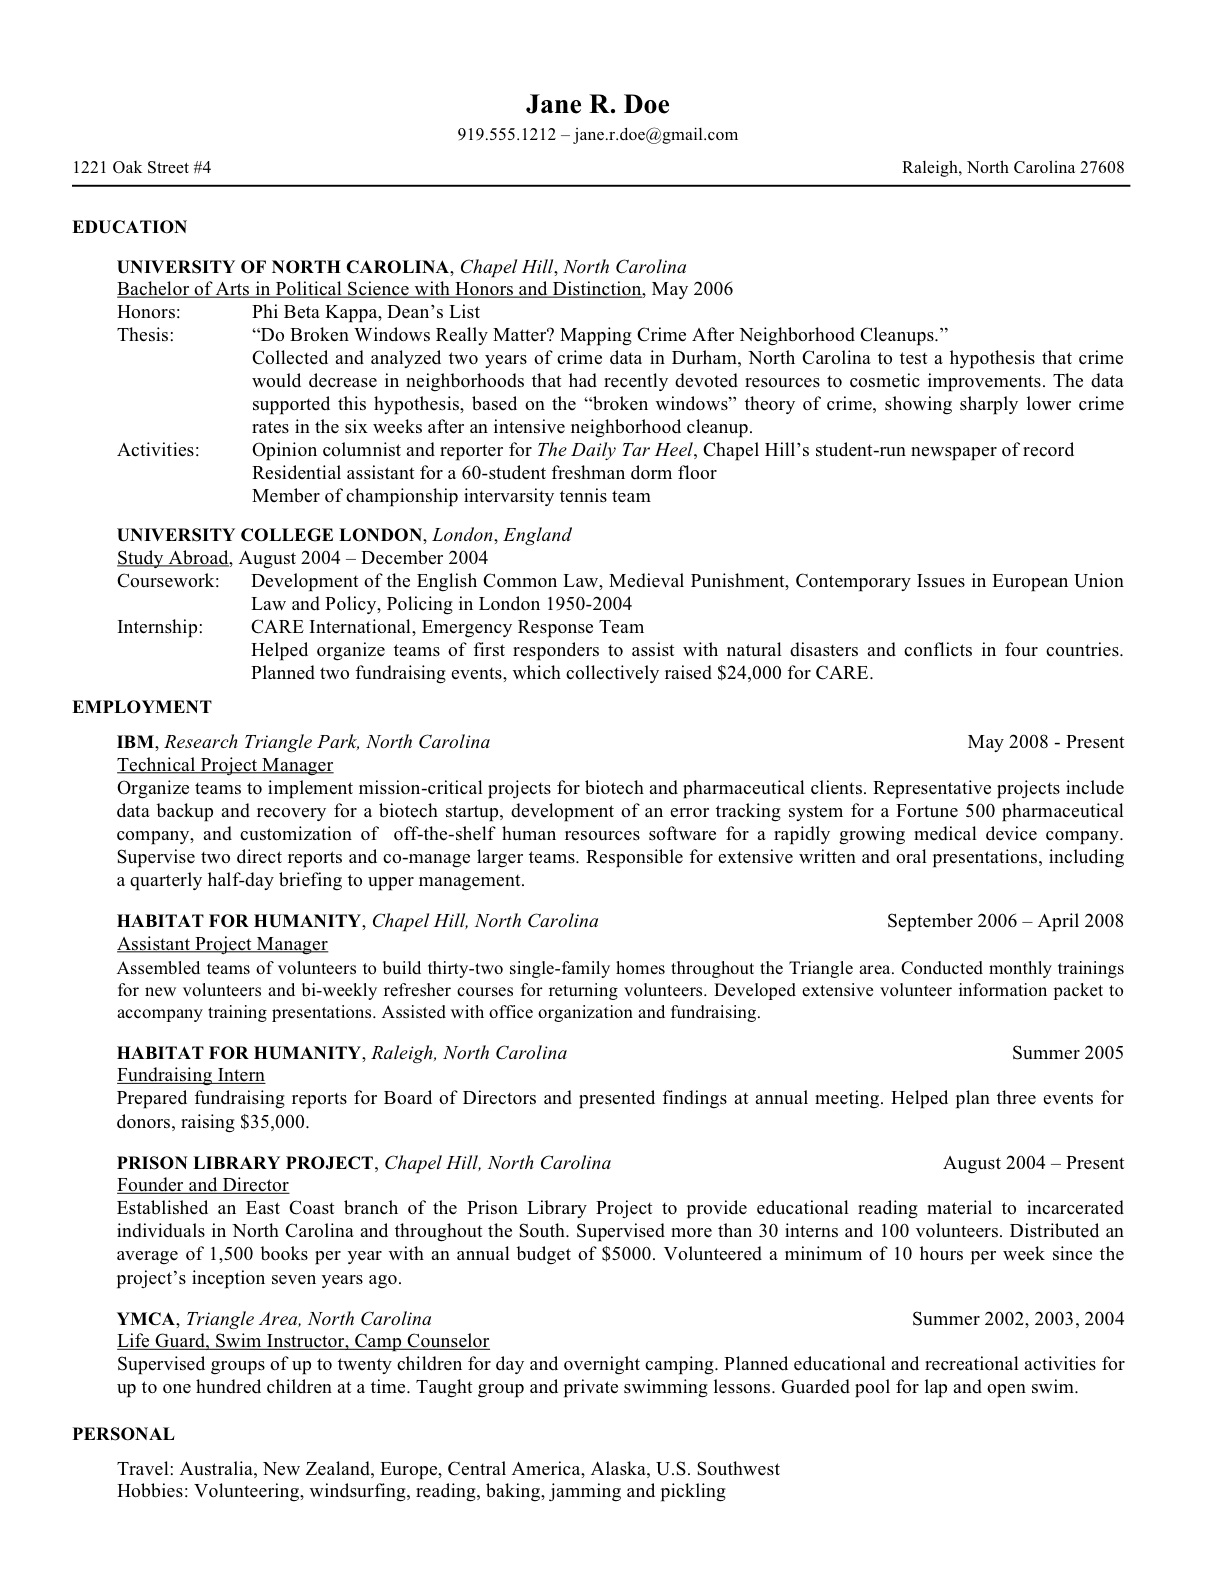 resume Law School Resume Tips how to craft a law school application that gets you in sample janes revised resume